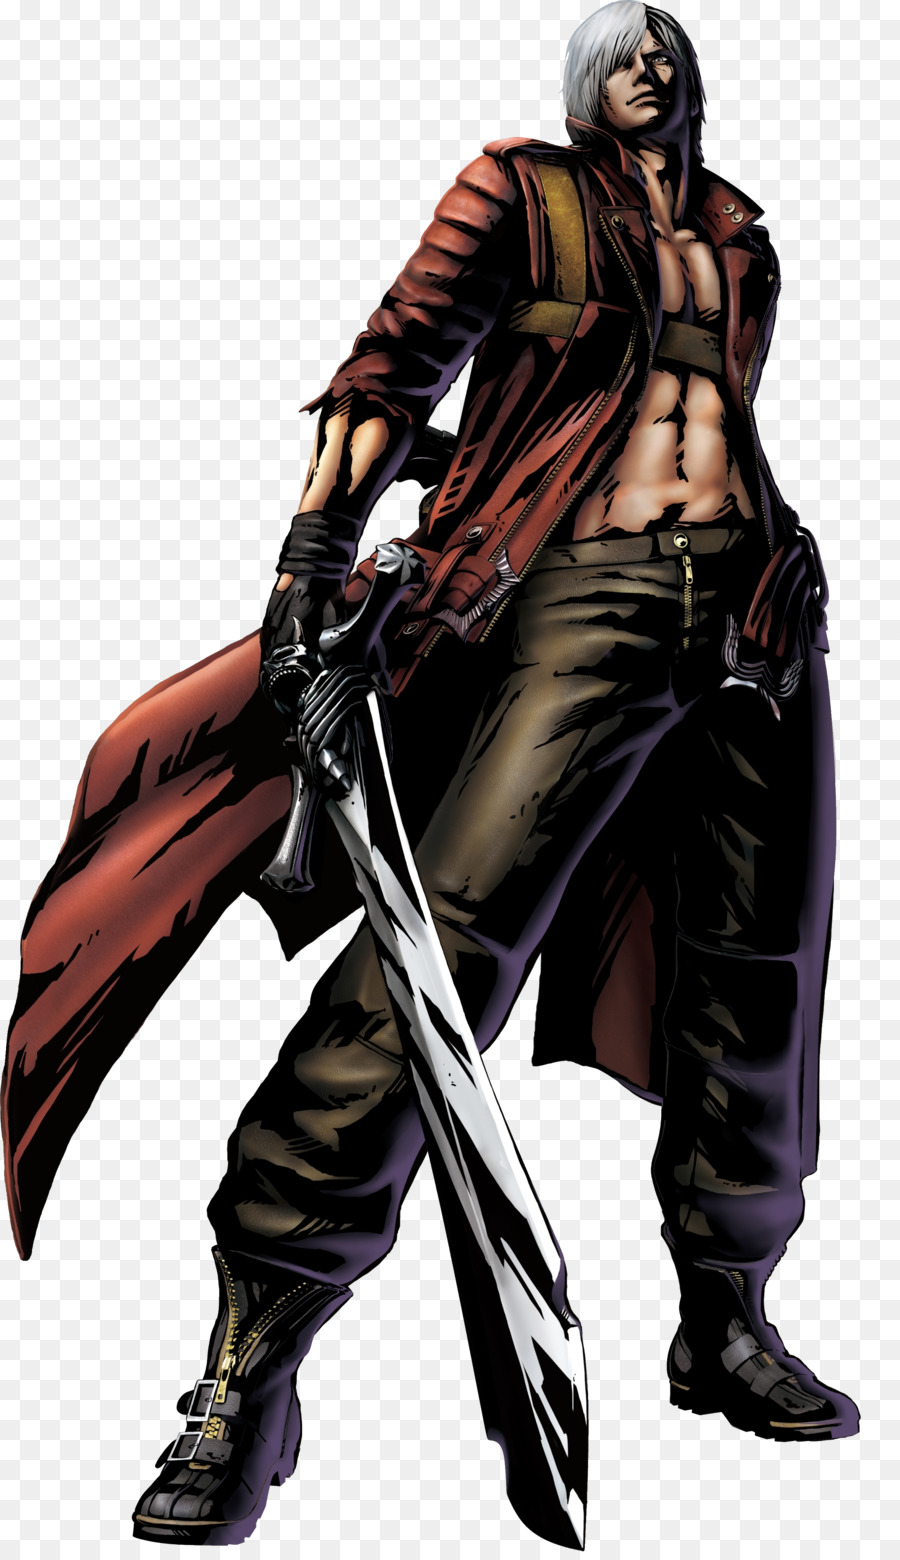 Devil May Cry Png Transparent Devil May Cry Png Images